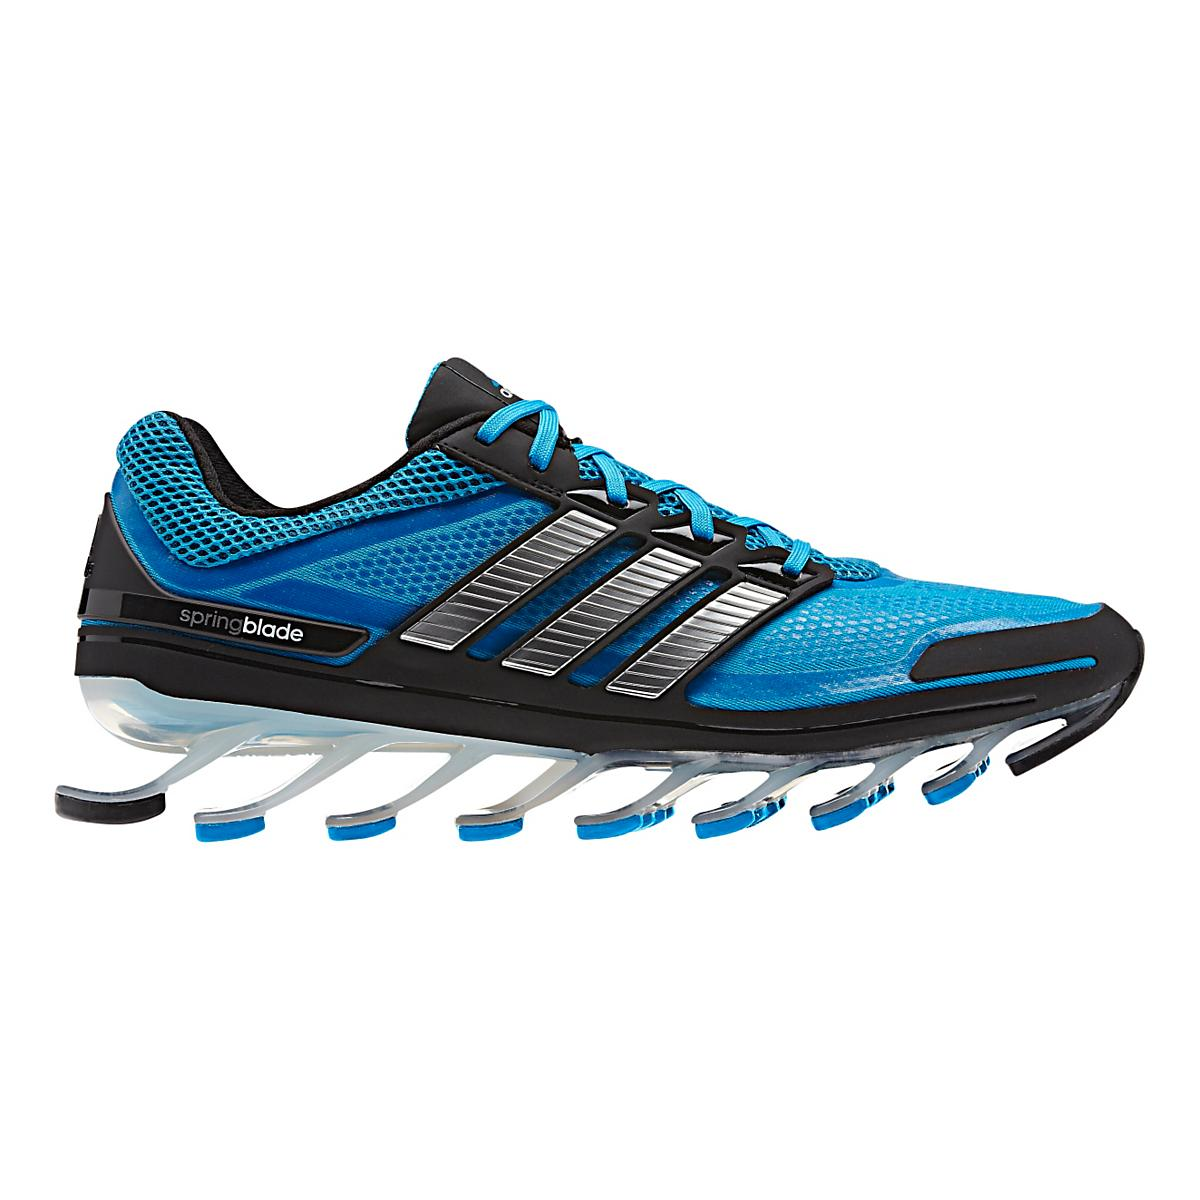 official photos 980d9 00b9d ... coupon code for mens adidas springblade running shoe at road runner  sports eb044 b27c2